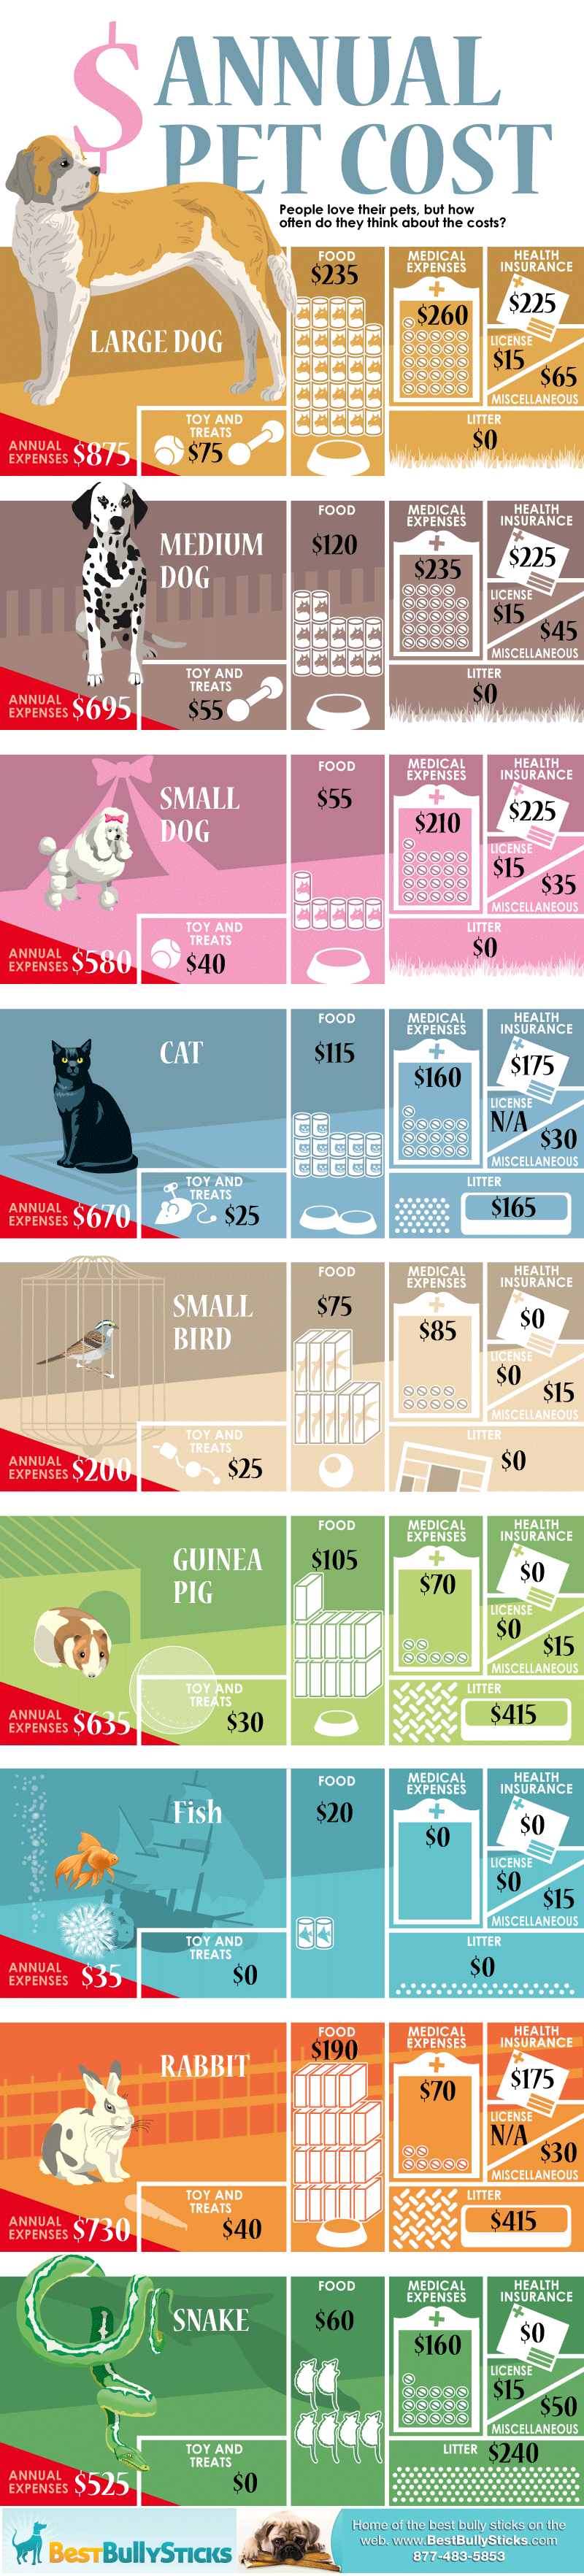 Annual Cost Of Pets Animal Infographic Pet Hacks Pets